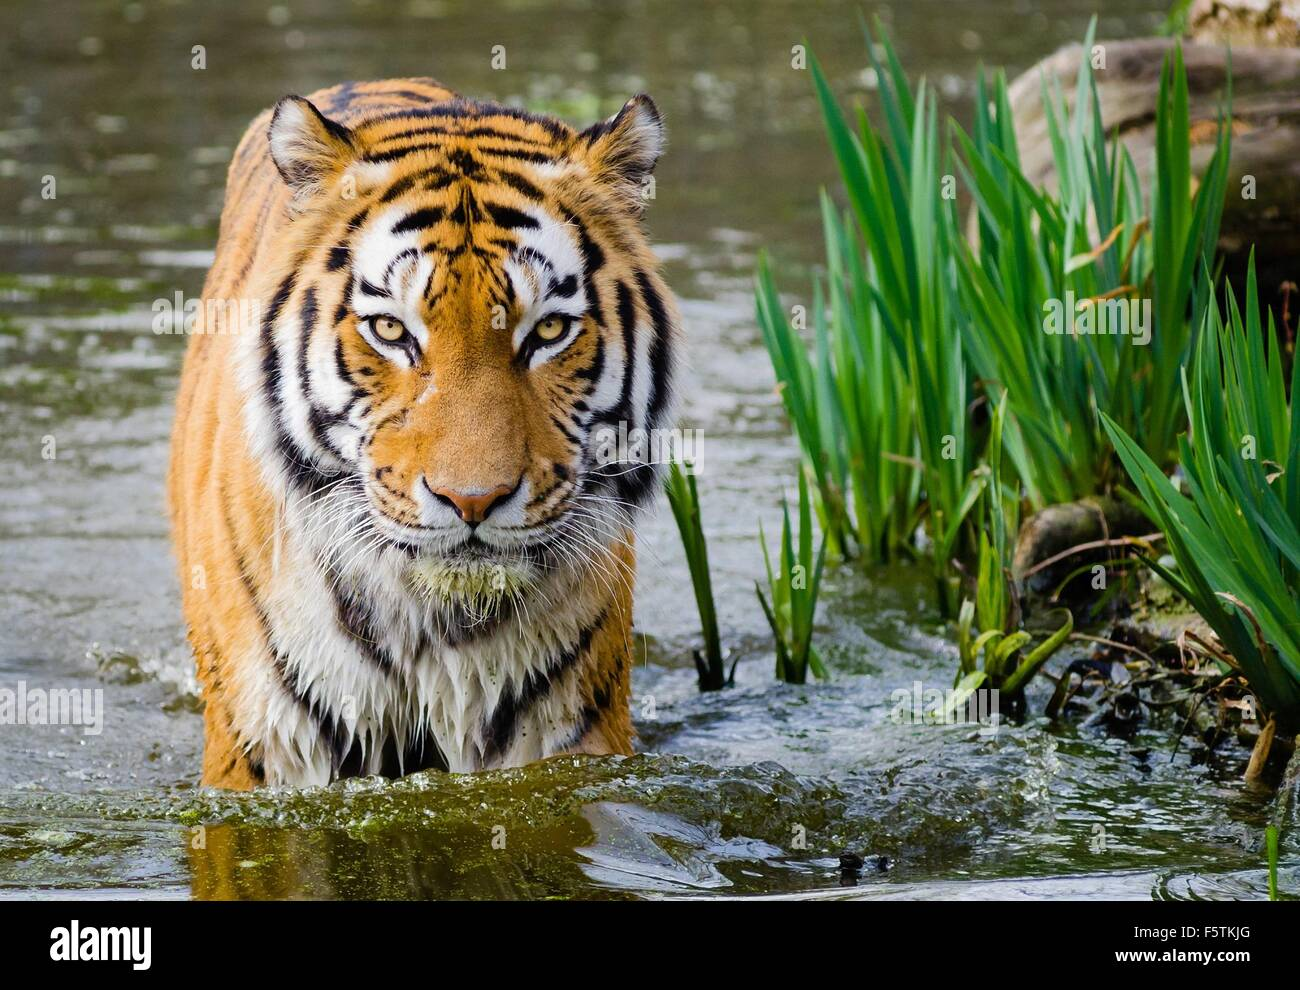 Closeup front view of an isolated tiger walking through water - Stock Image